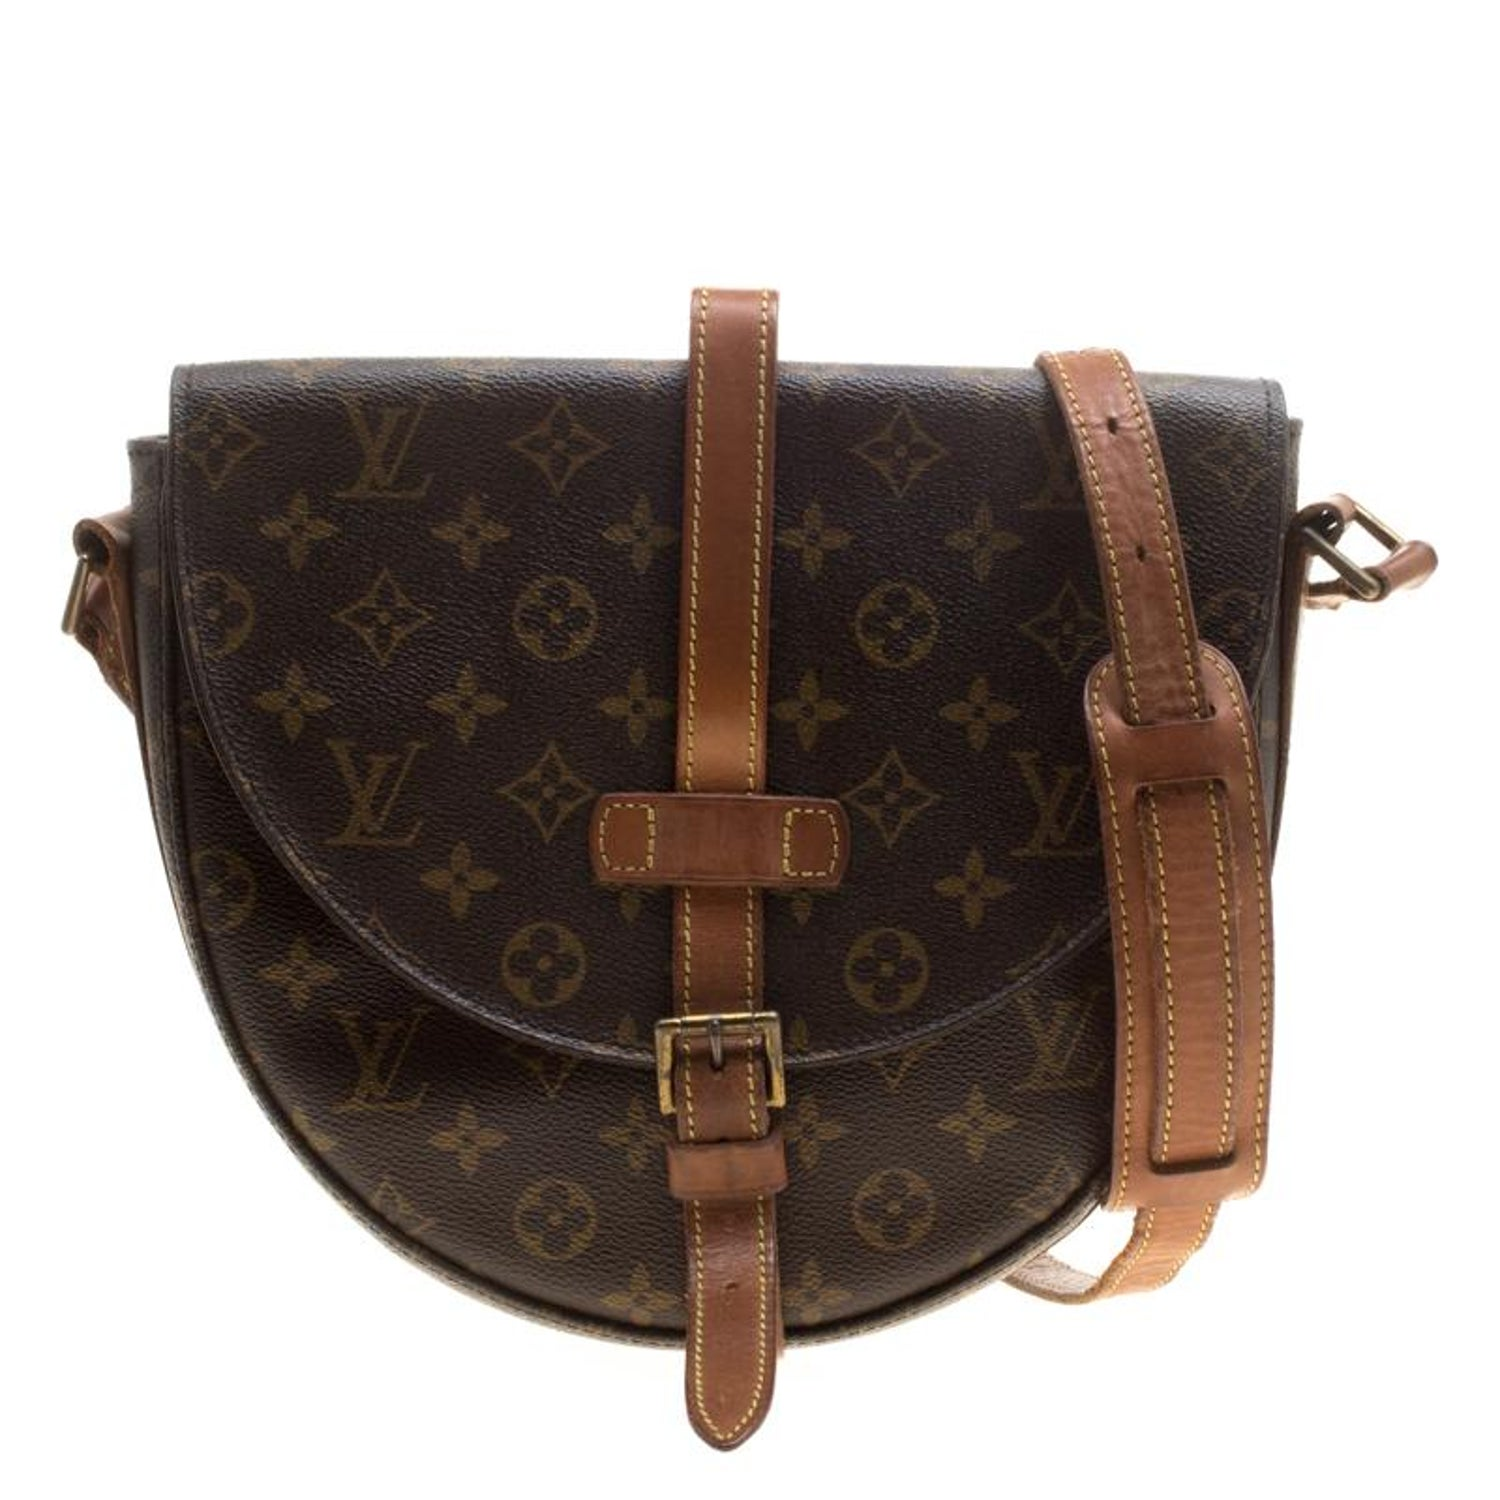 78a45b9c1 Louis Vuitton Monogram Canvas Chantilly GM Bag For Sale at 1stdibs